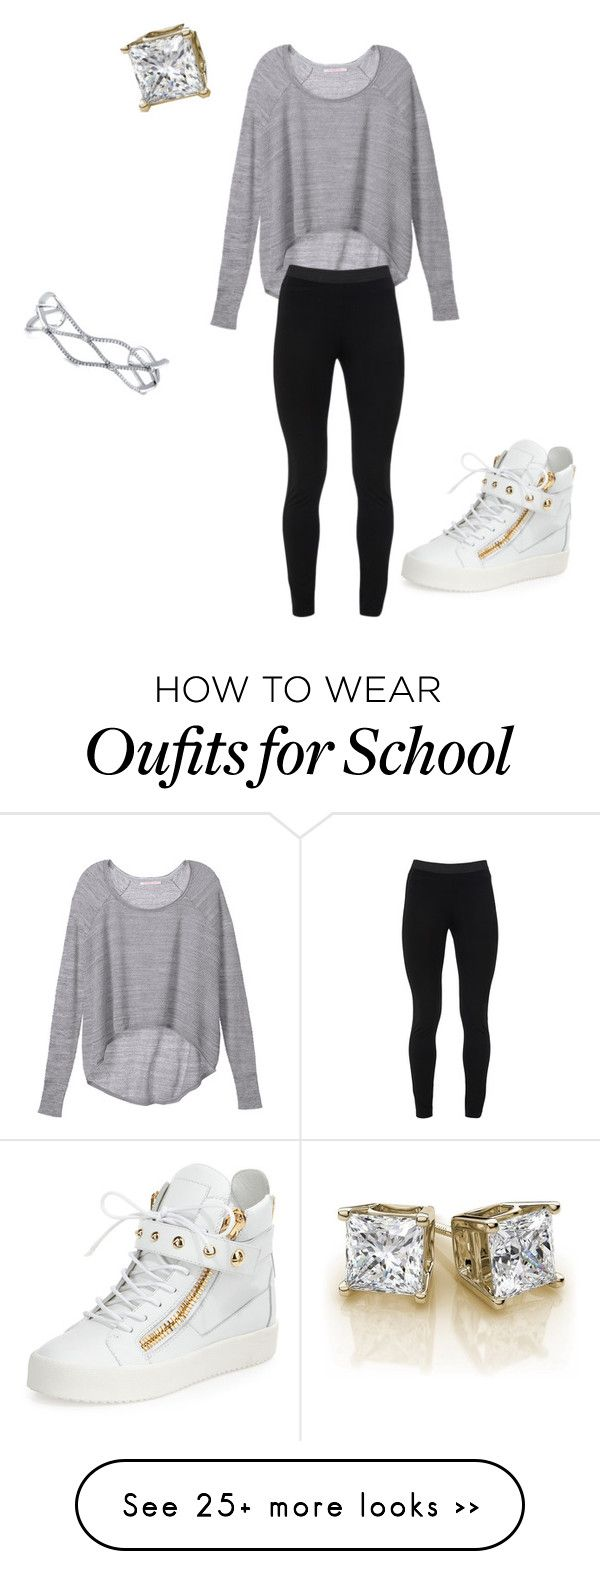 """back to school"" by stylesqueen10 on Polyvore featuring Victoria's Secret, Peace of Cloth, BERRICLE and Giuseppe Zanotti"